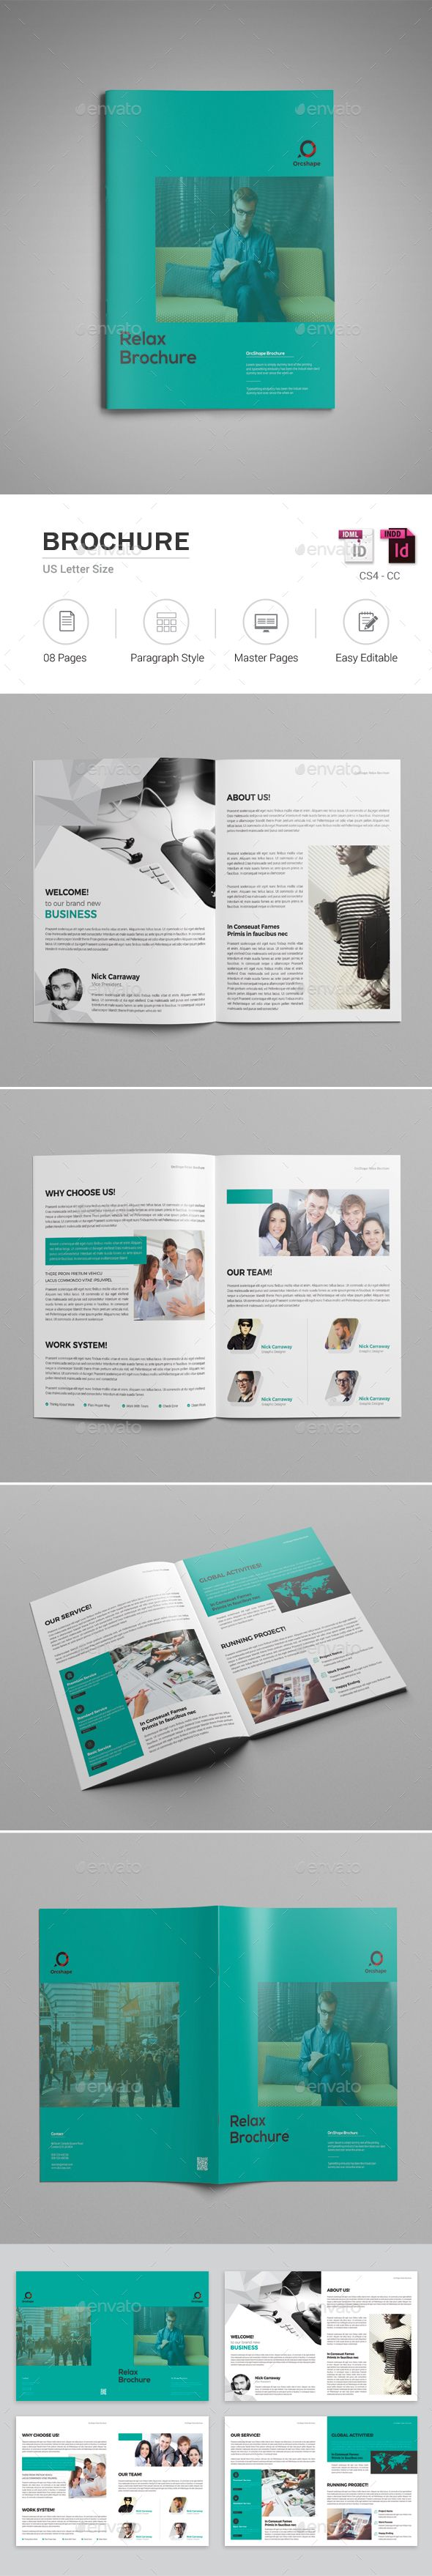 Best  Indesign Brochure Templates Ideas On   Brochure